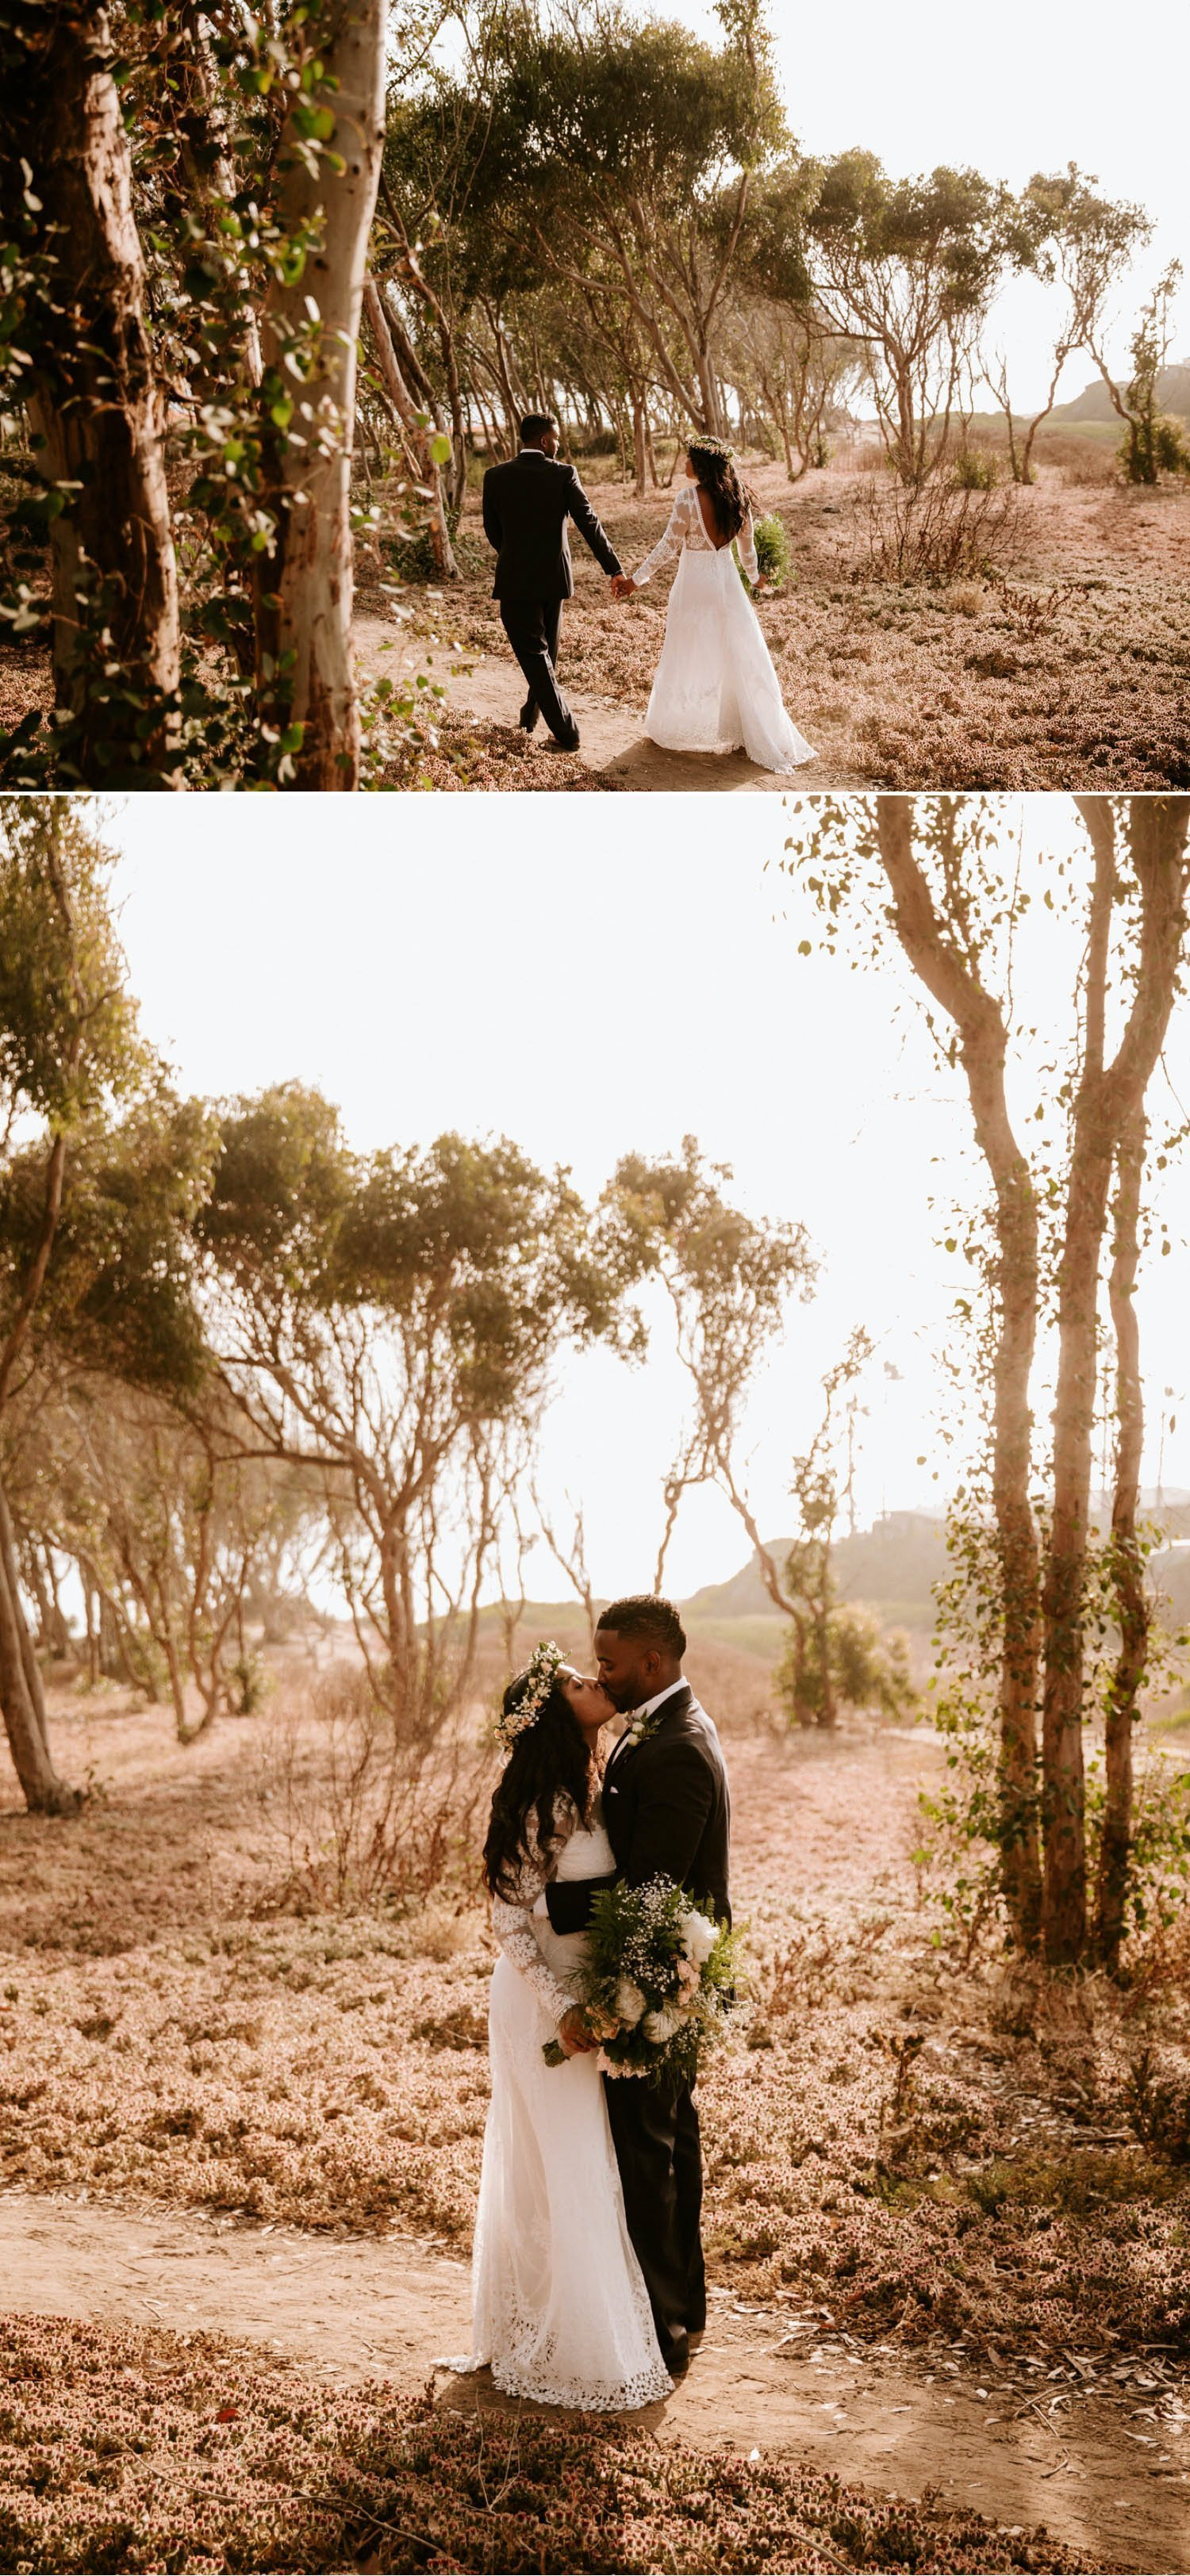 San Diego wedding photographer Paige Nelson